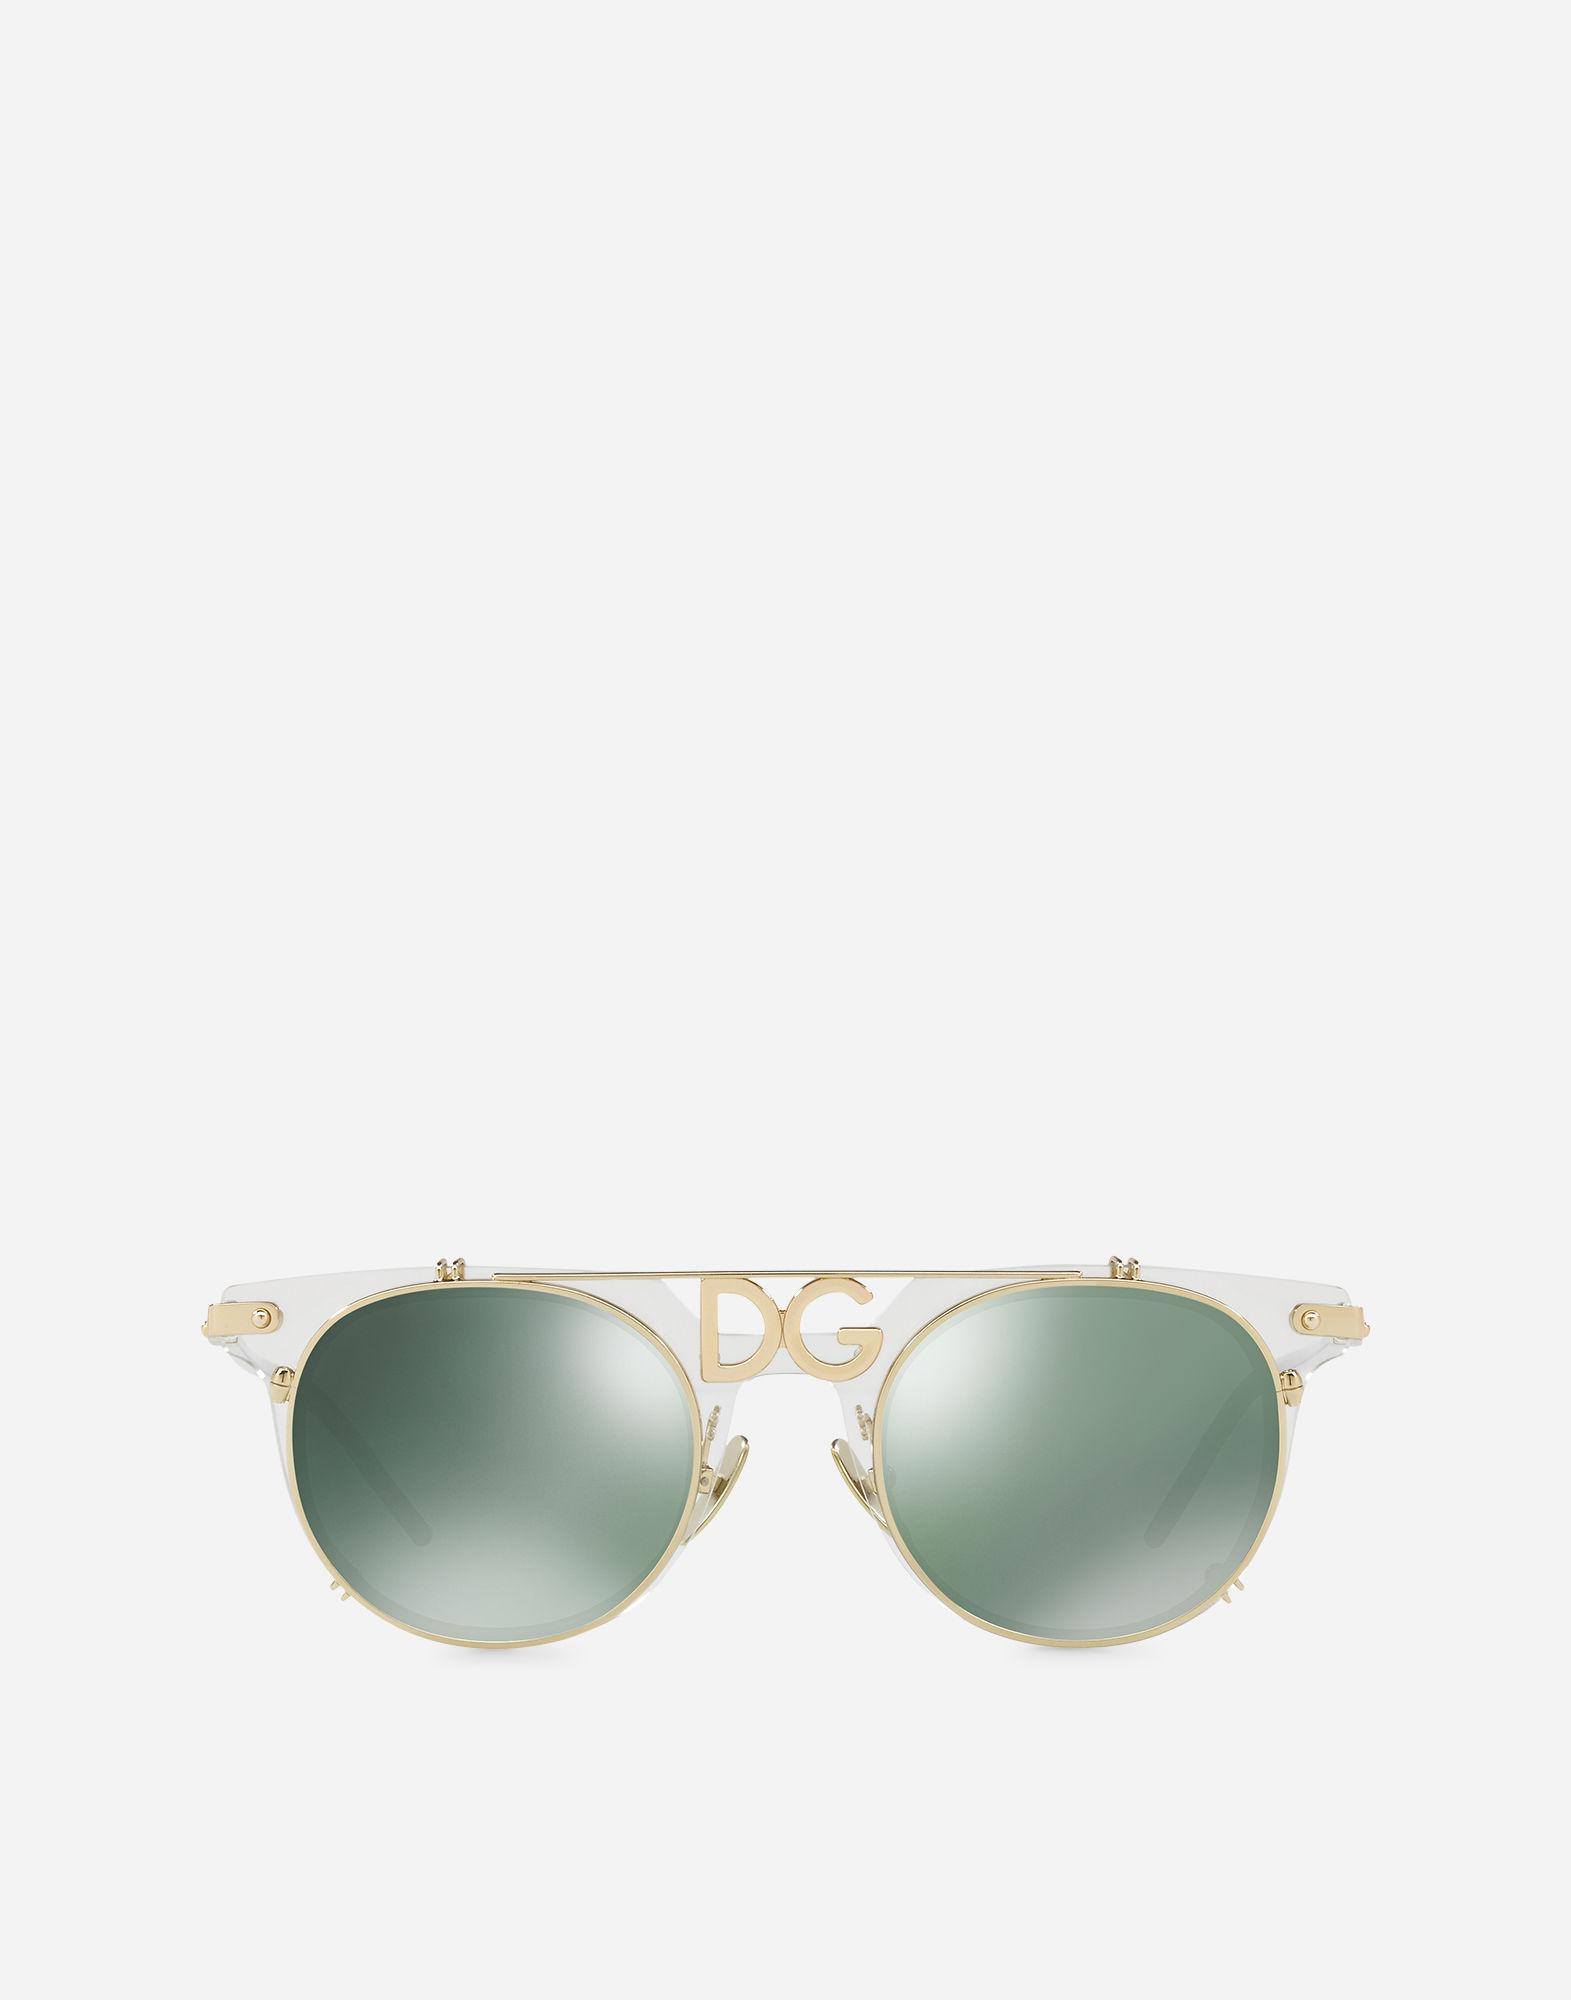 Lyst - Dolce & Gabbana Panthos Sunglasses With Metal Frame in Metallic